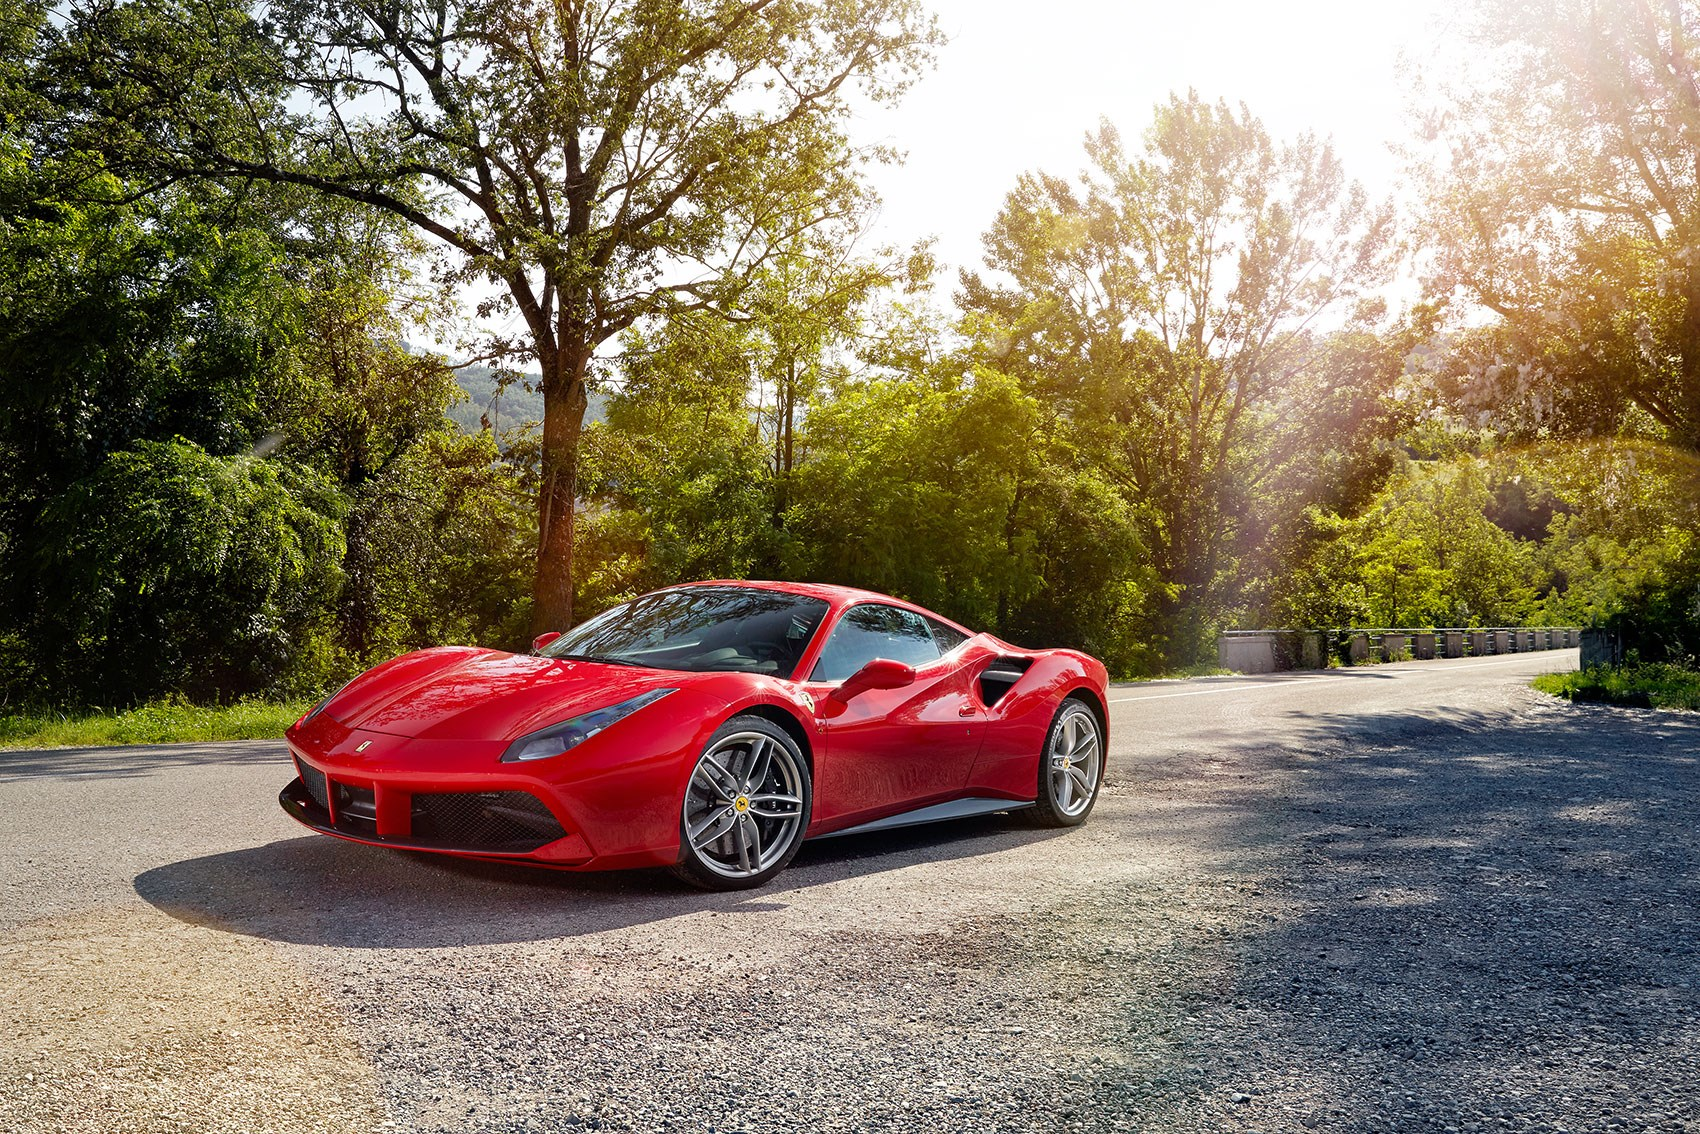 Ferrari 488 Gtb By Car Magazine